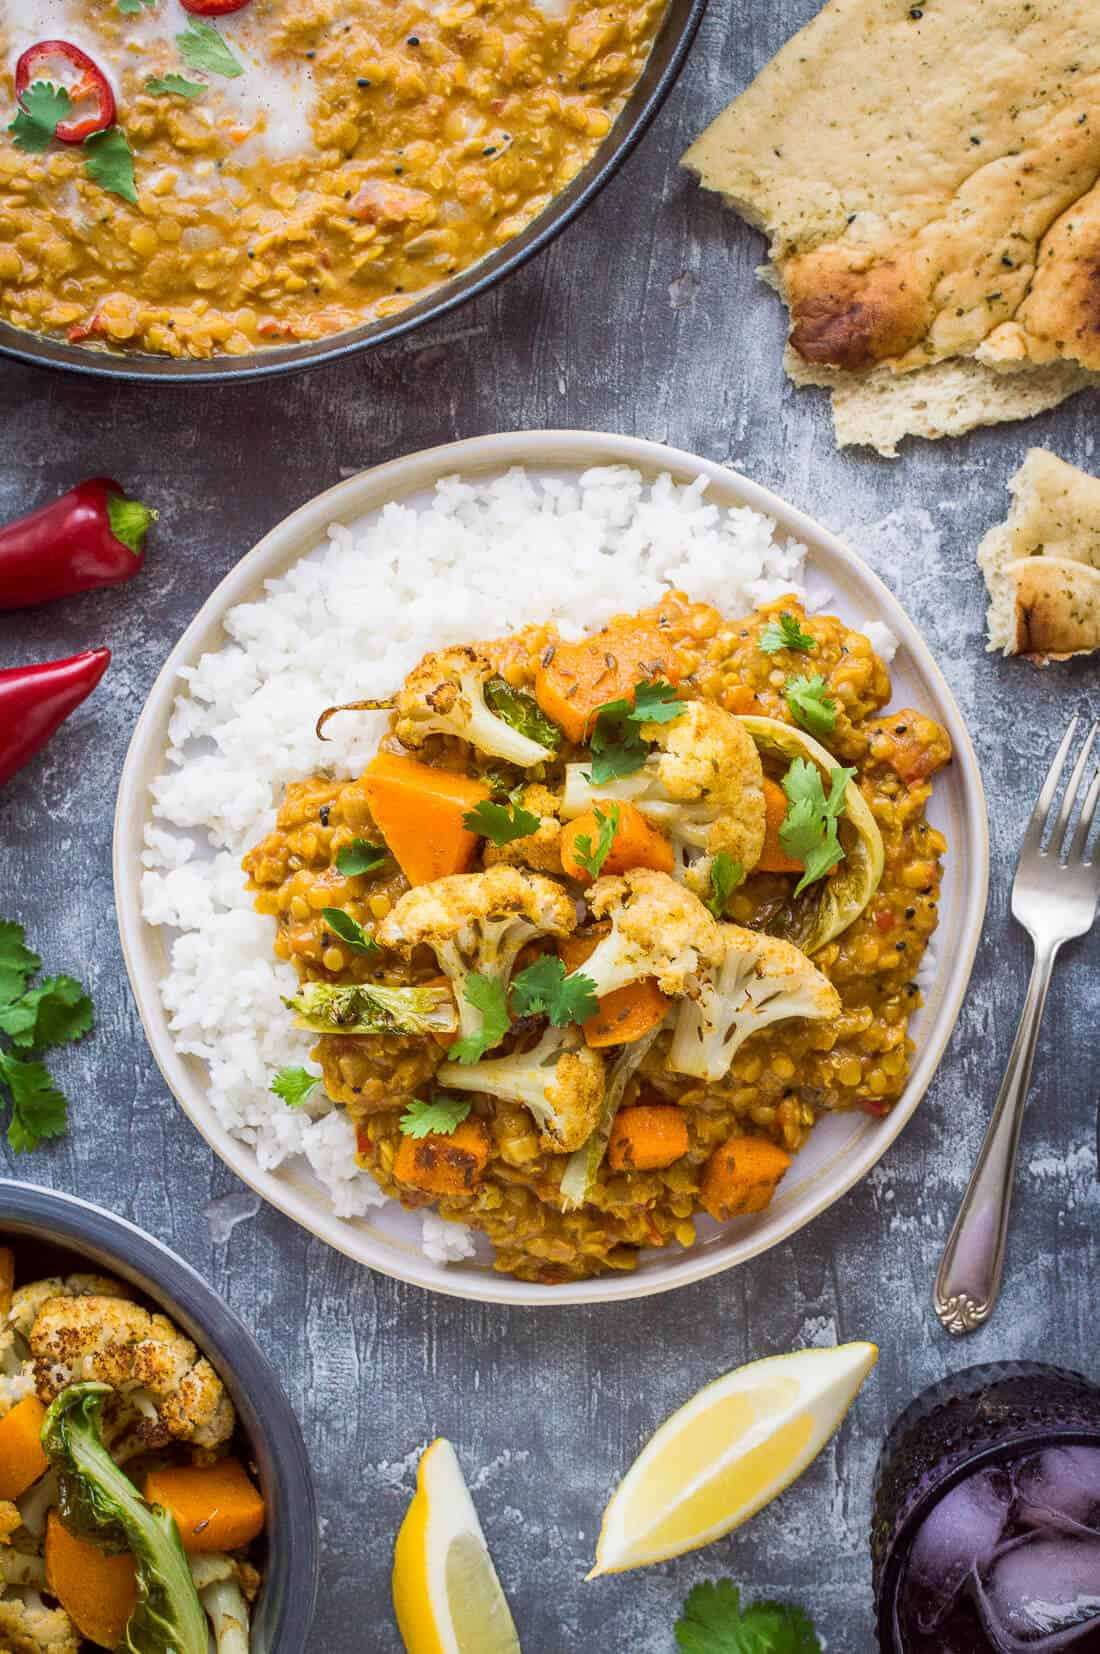 A plate of red lentil dhal and white rice with roasted cauliflower and butternut squash.